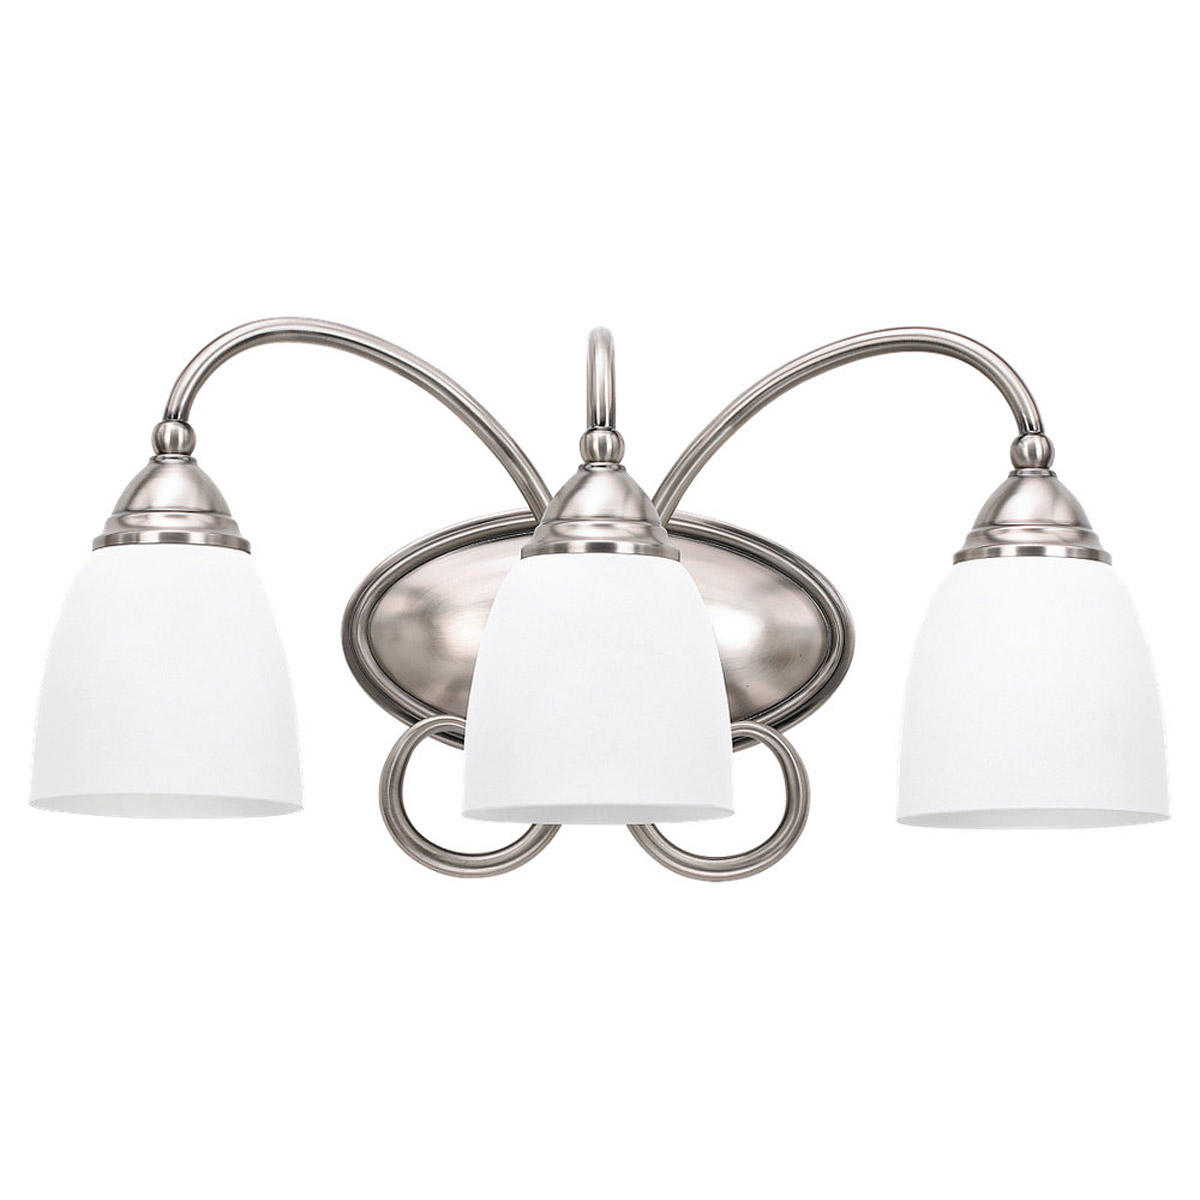 Sea Gull Lighting Montclaire 3 Light Bath Vanity in Antique Brushed Nickel 44106-965 photo